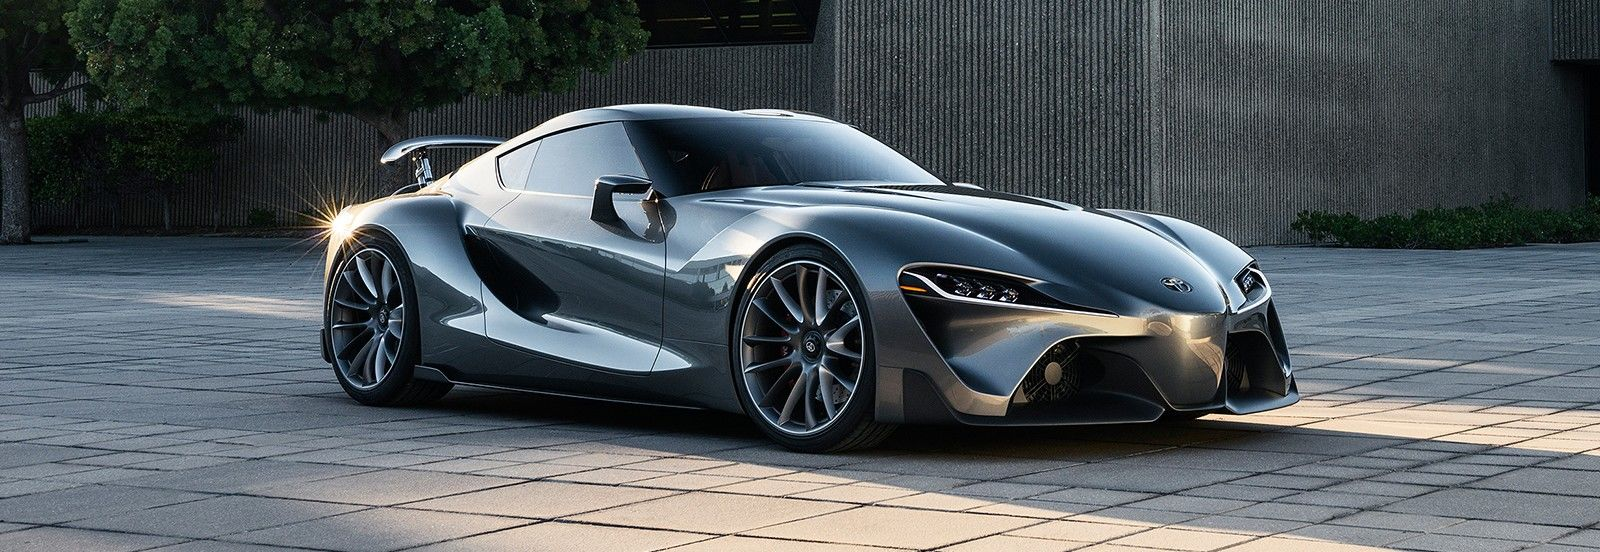 2017 Toyota Supra Price Specs Amp Release Date Carwow